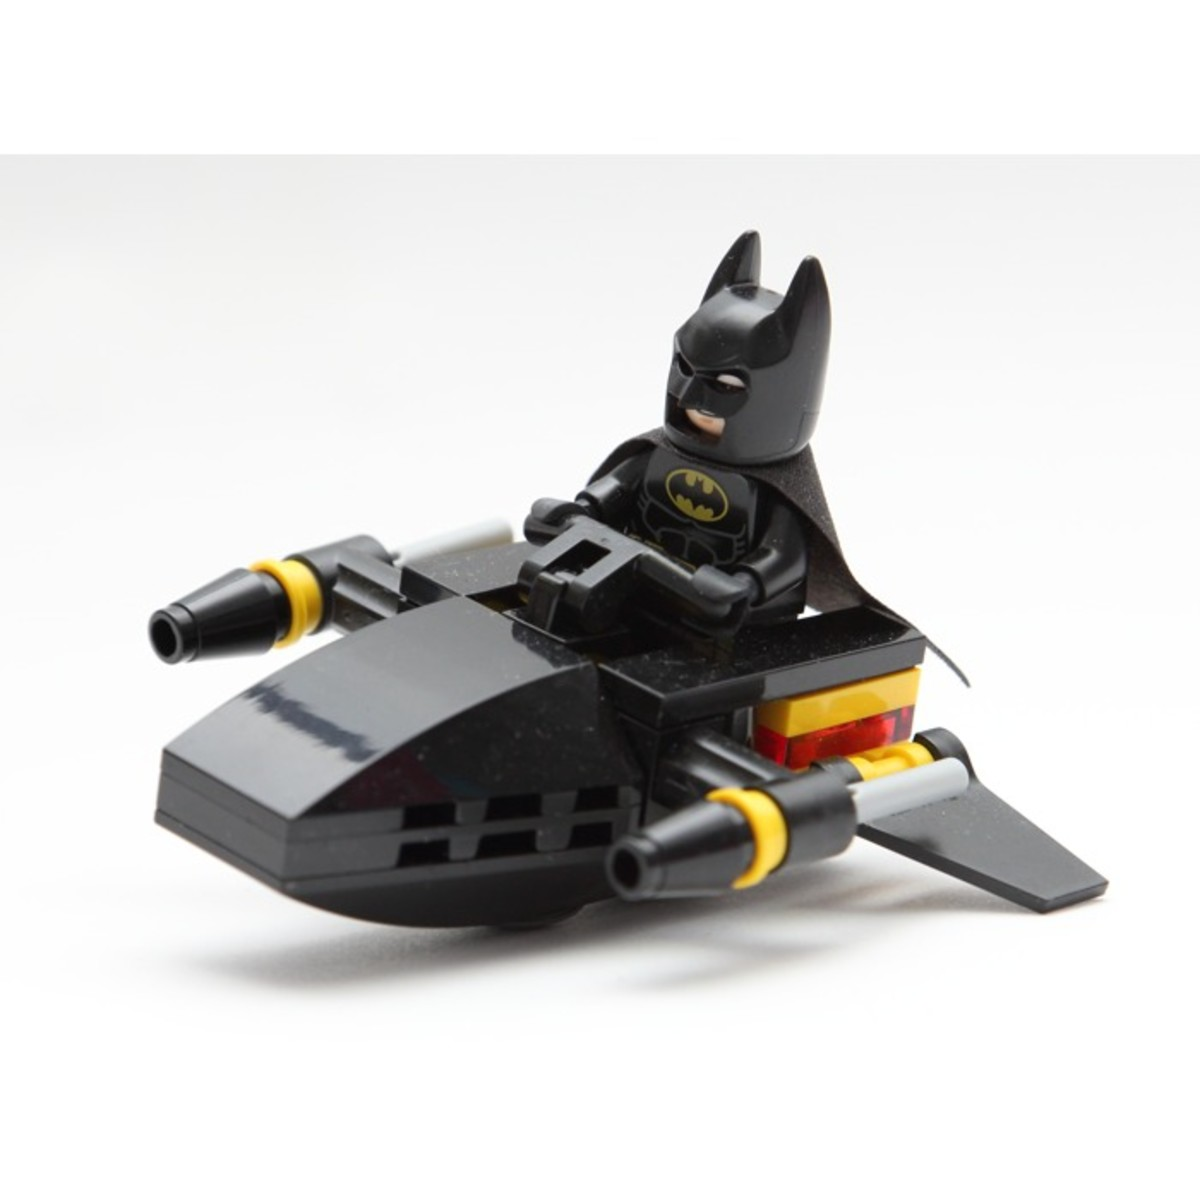 LEGO Super Heroes Batman Jetski 30160 Assembled